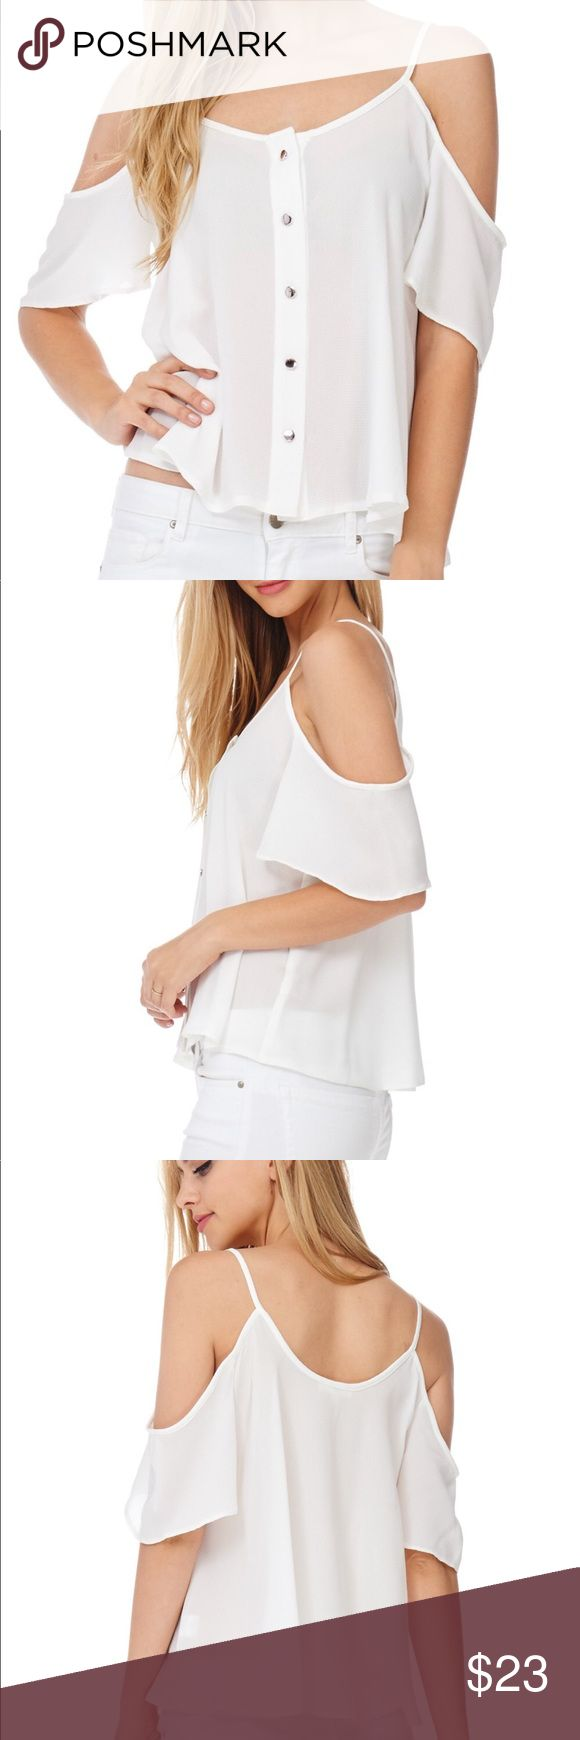 💸Women's chiffon button-up cold-shoulder top Dress this cute white off the shoulder sheer button down chiffon top for any occasion Tops Blouses